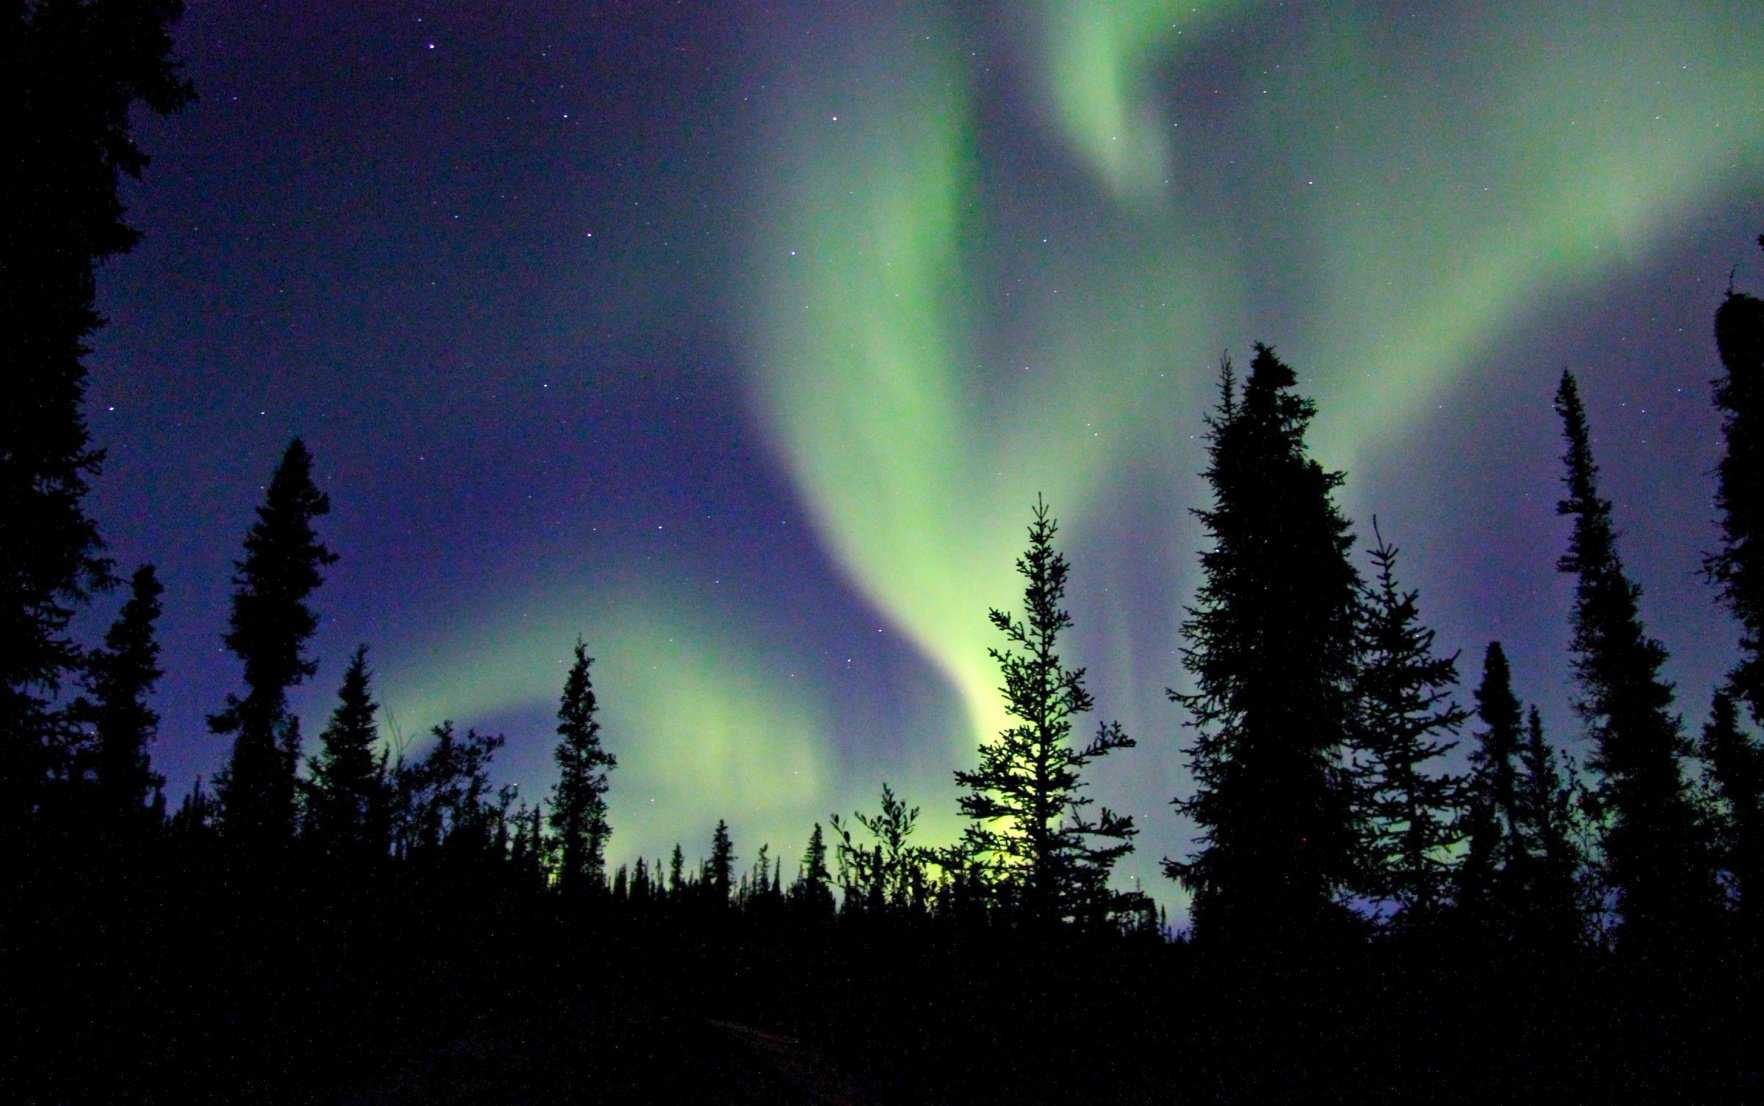 Best Northern Lights Experience: Glass Igloos and Snow Hotels